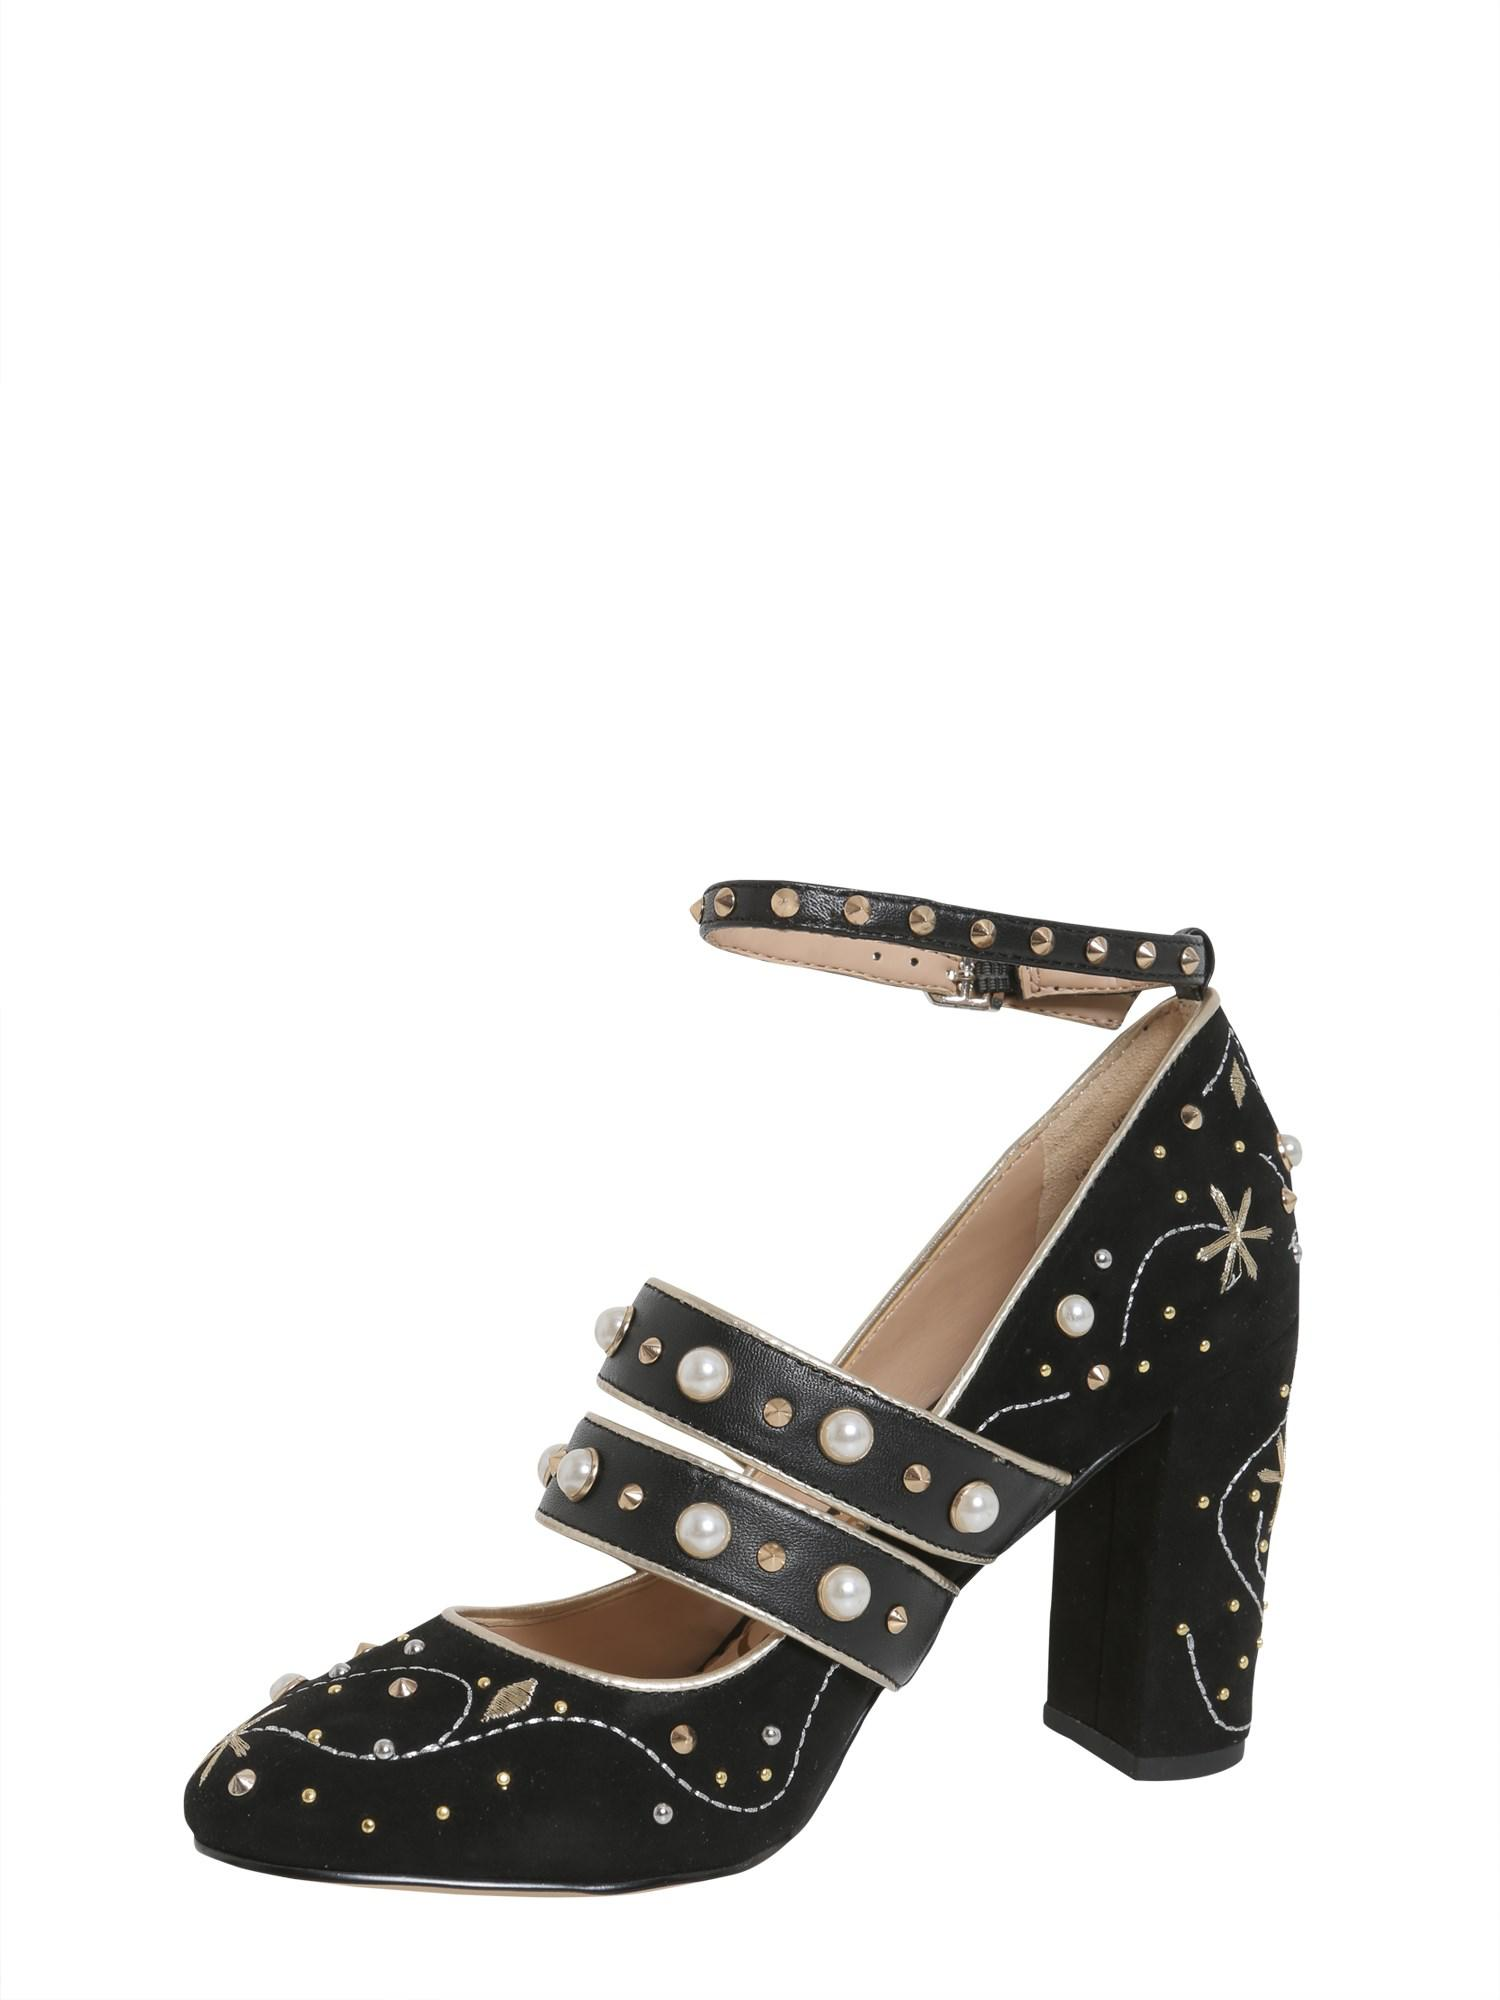 Sam Edelman Semora pumps